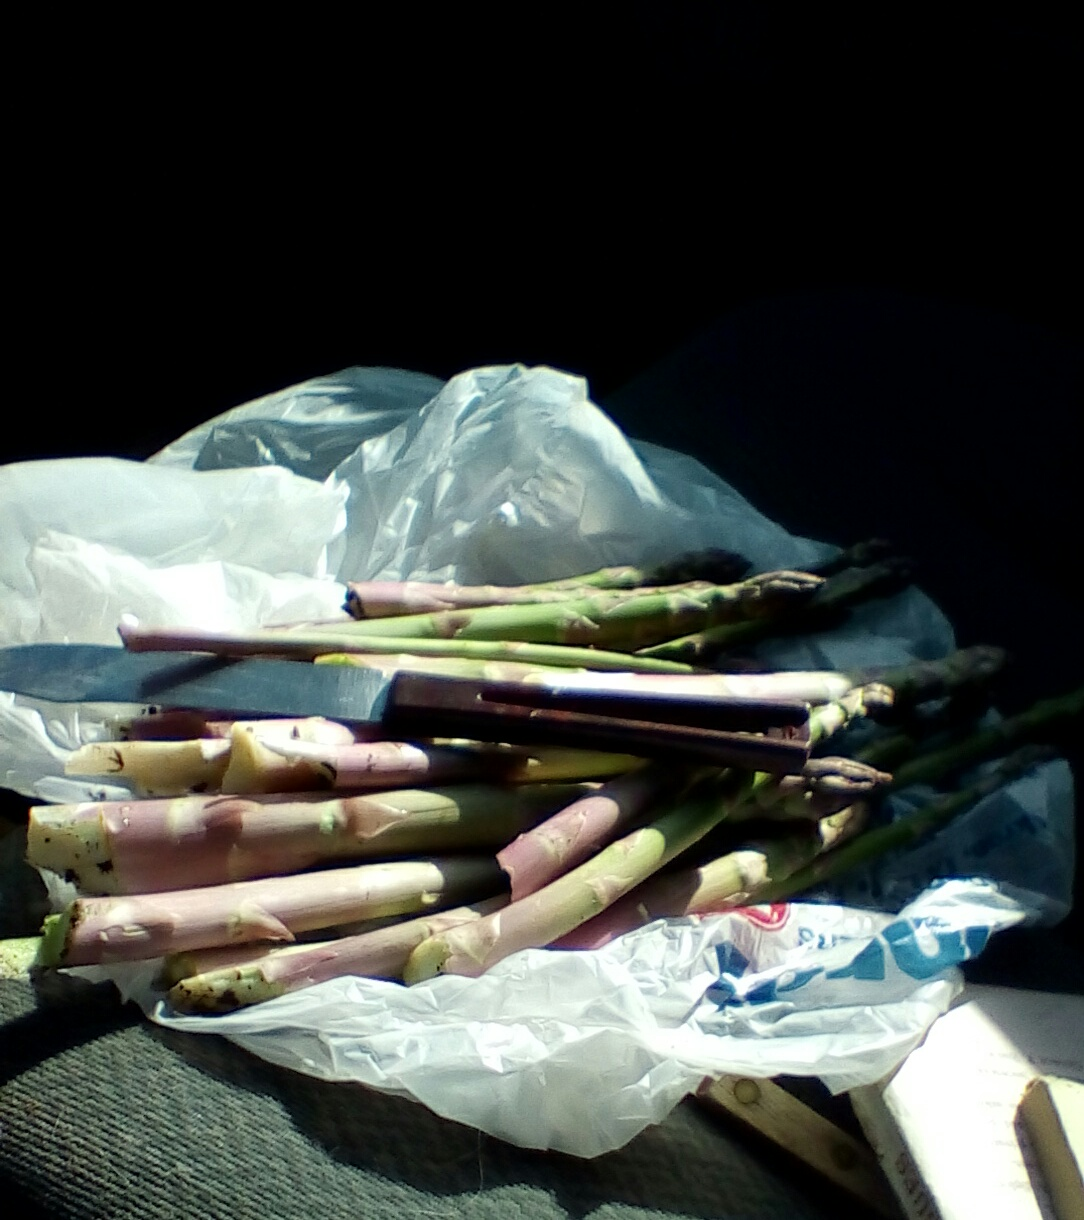 Fresh-cut asparagus (from a secret location)